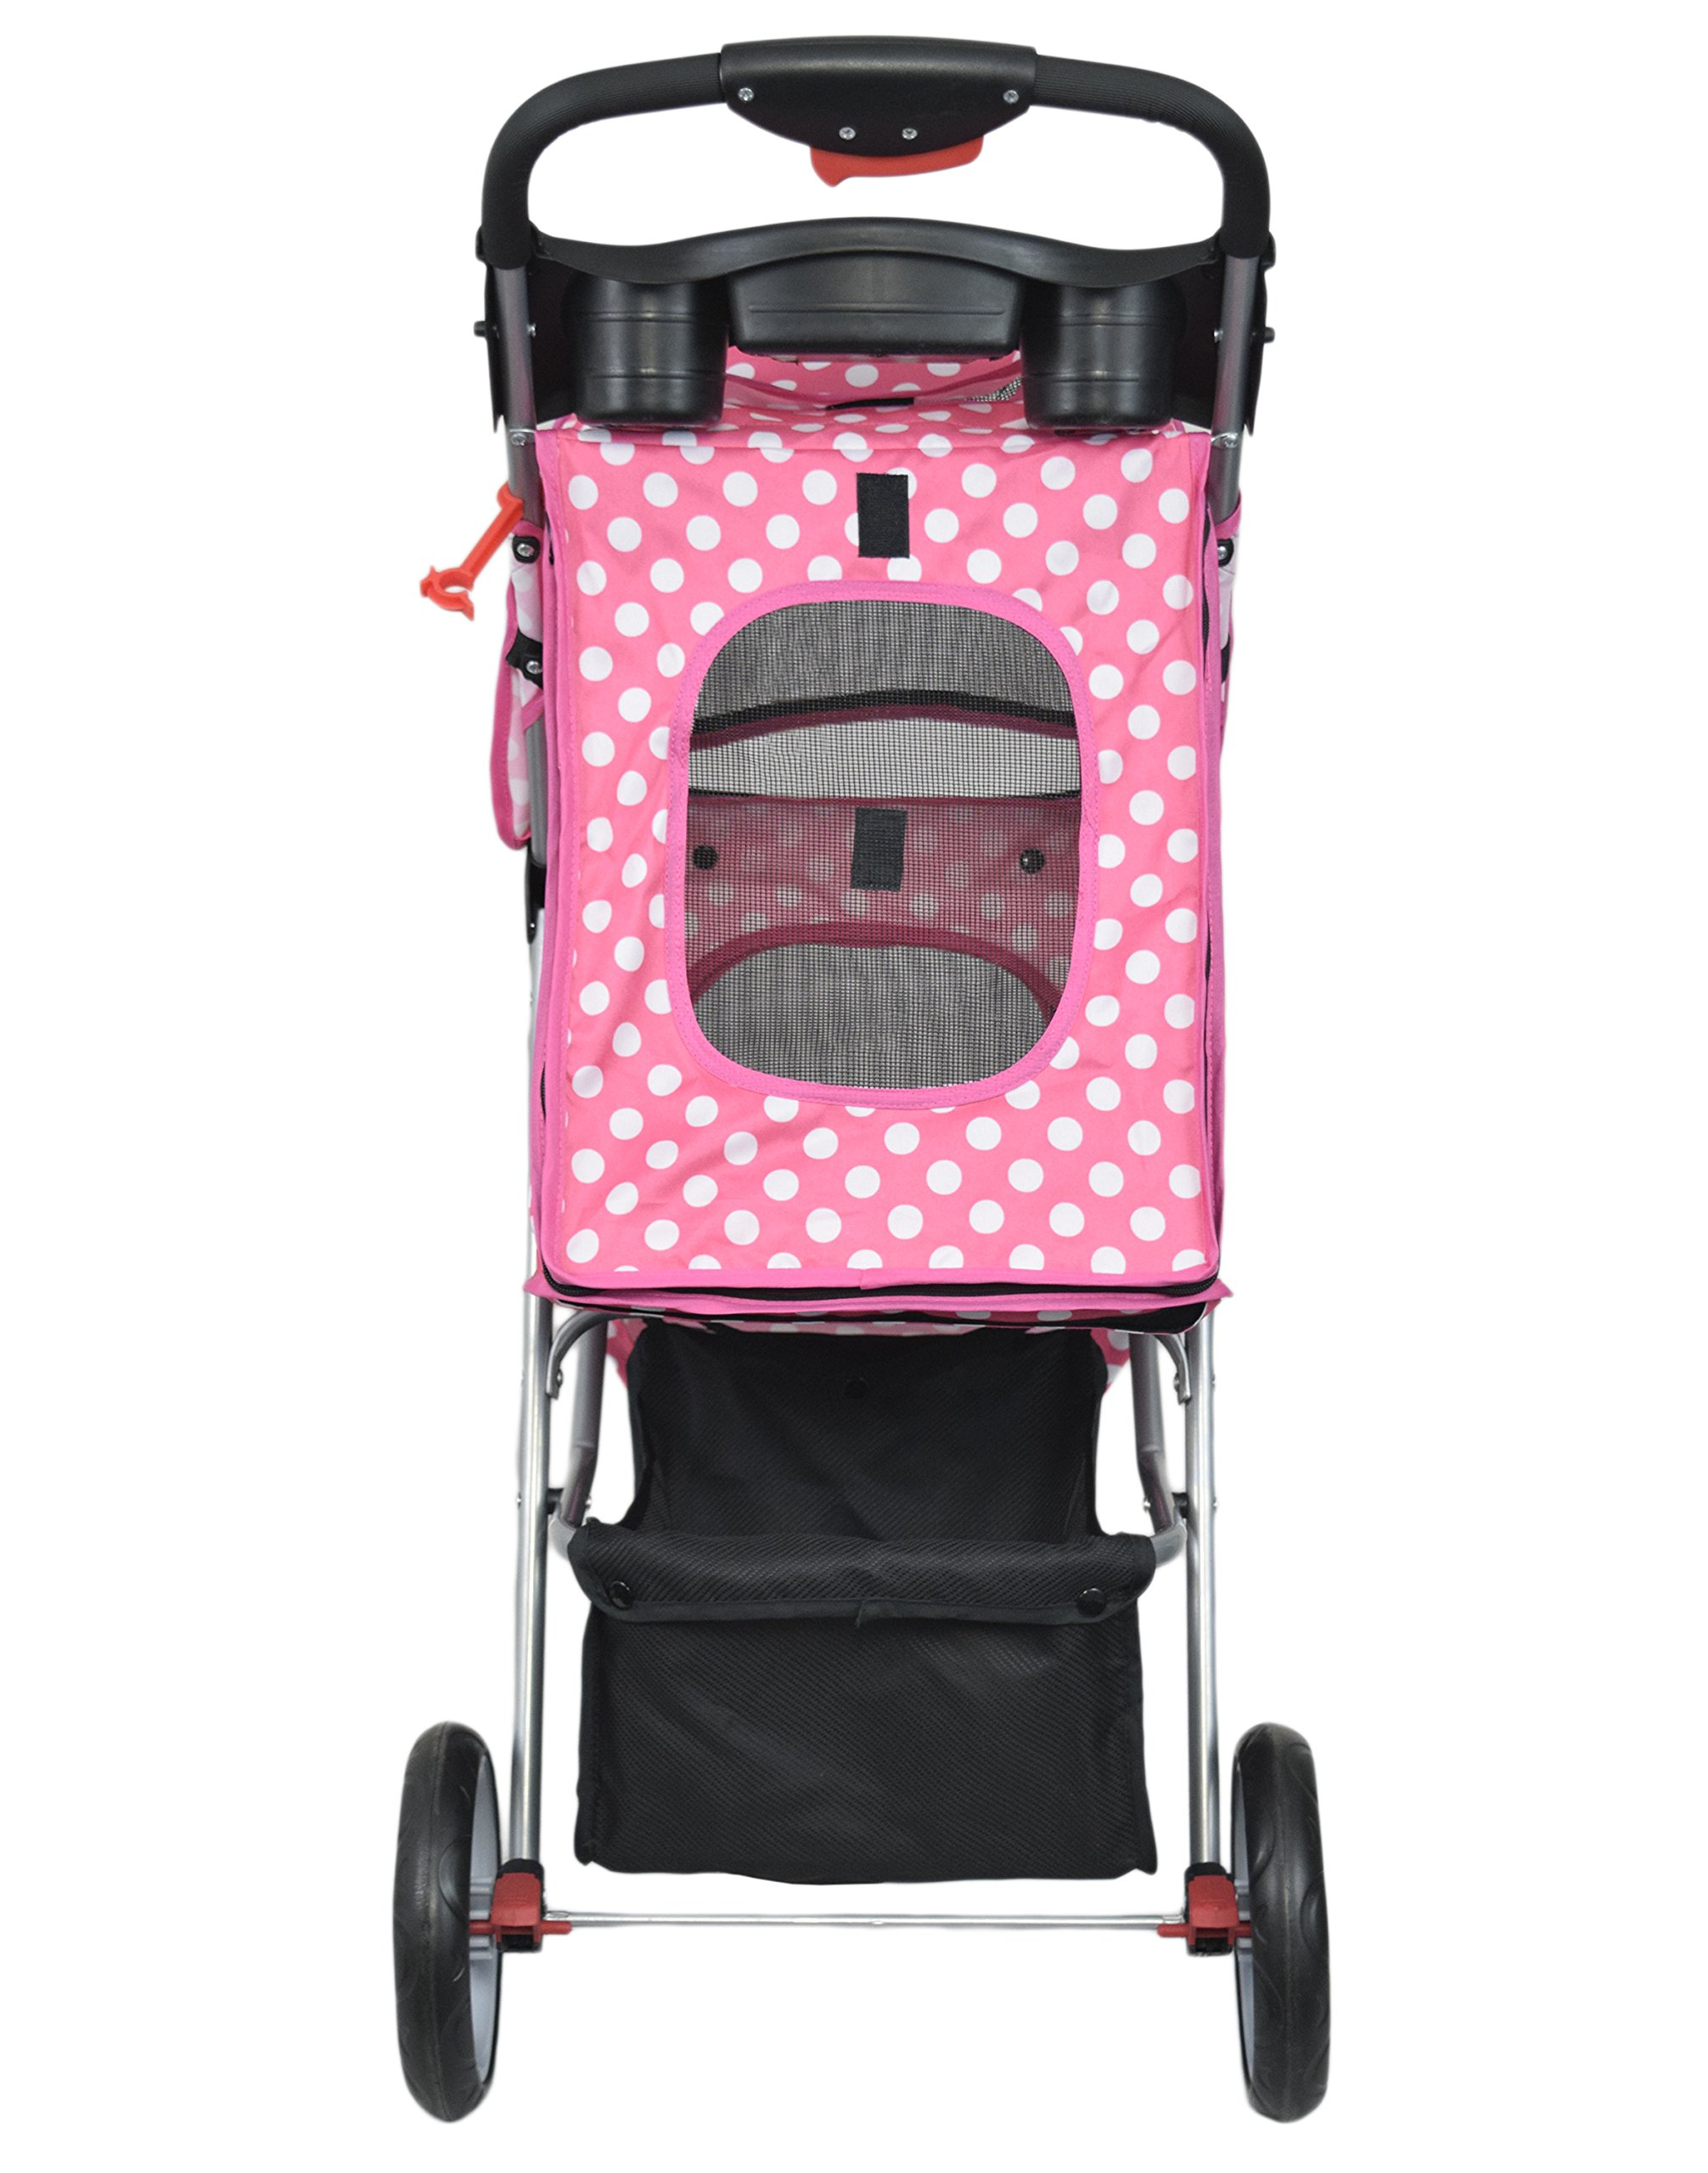 VIVO Three Wheel Pet Stroller, for Cat, Dog and More, Foldable Carrier Strolling Cart, Multiple Colors (Pink & White Polka Dot) by VIVO (Image #6)